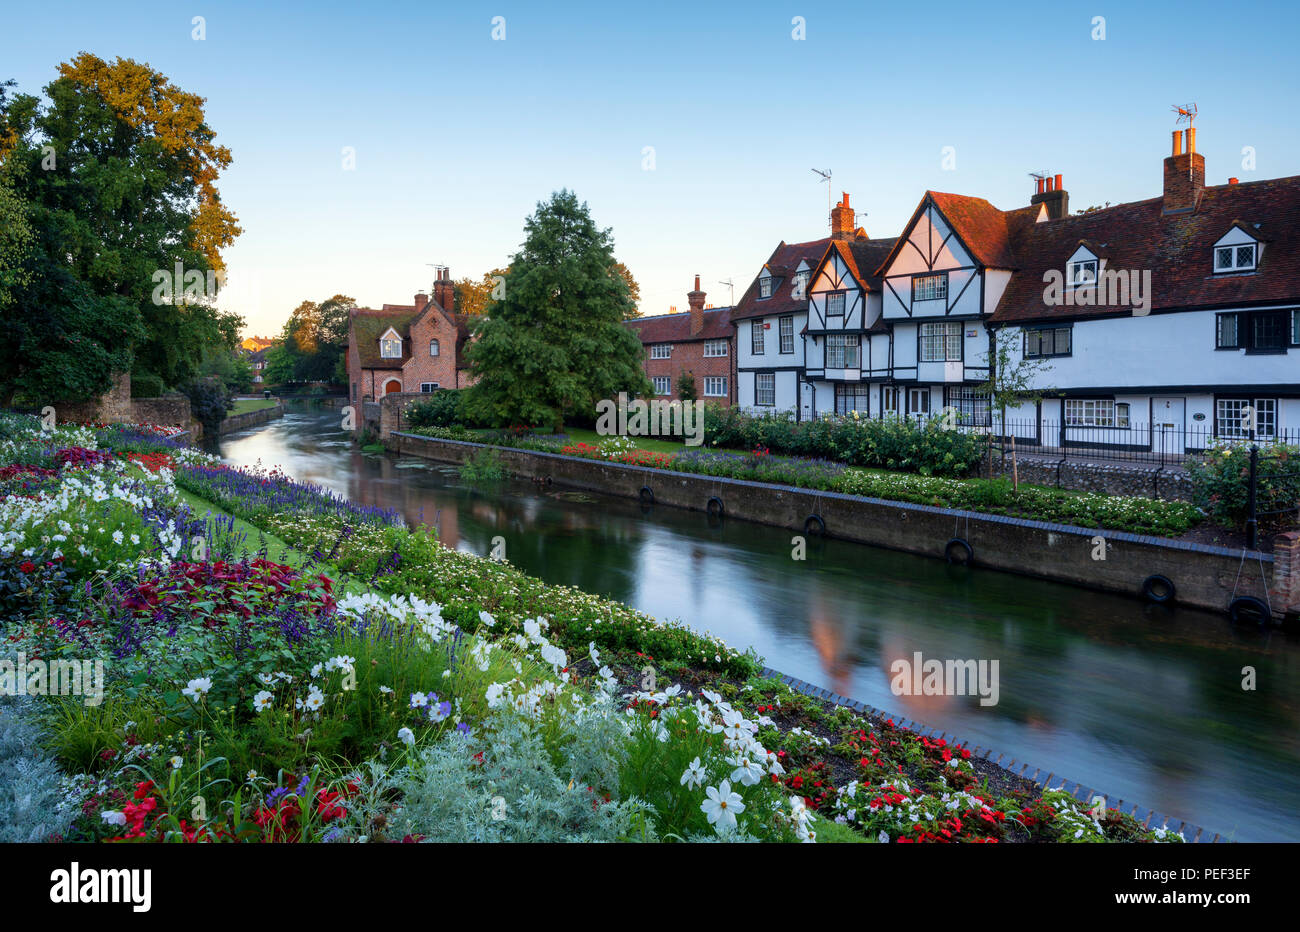 The beautiful Westgate Gardens in the medieval city of Canterbury. - Stock Image